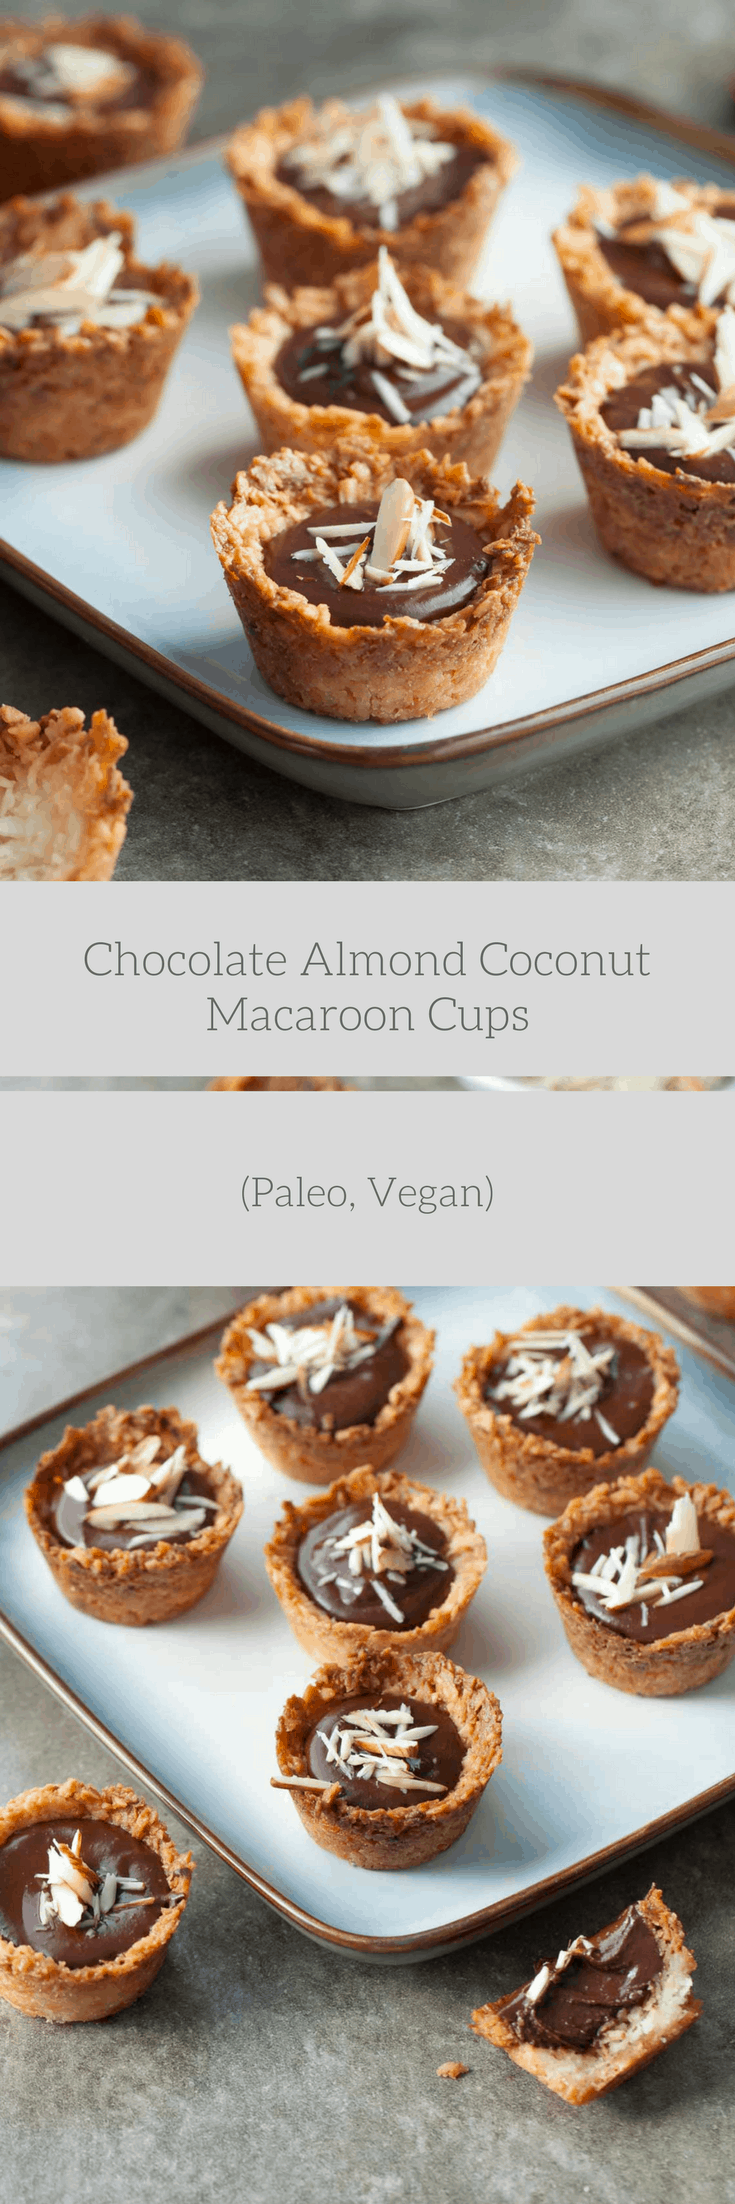 Chocolate Covered Almond Macaroons Recipe